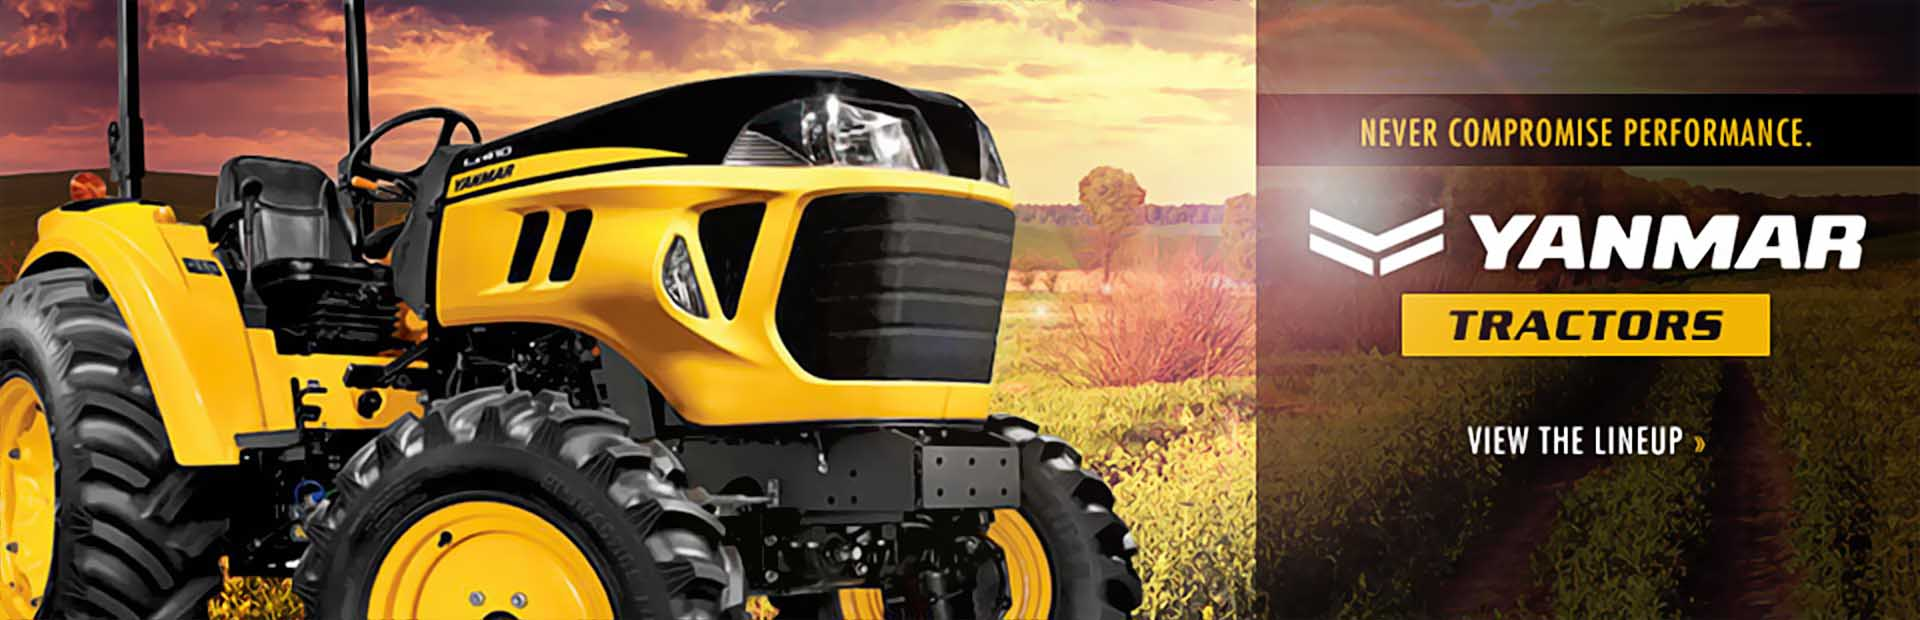 Yanmar Tractors: Click here to see the lineup!